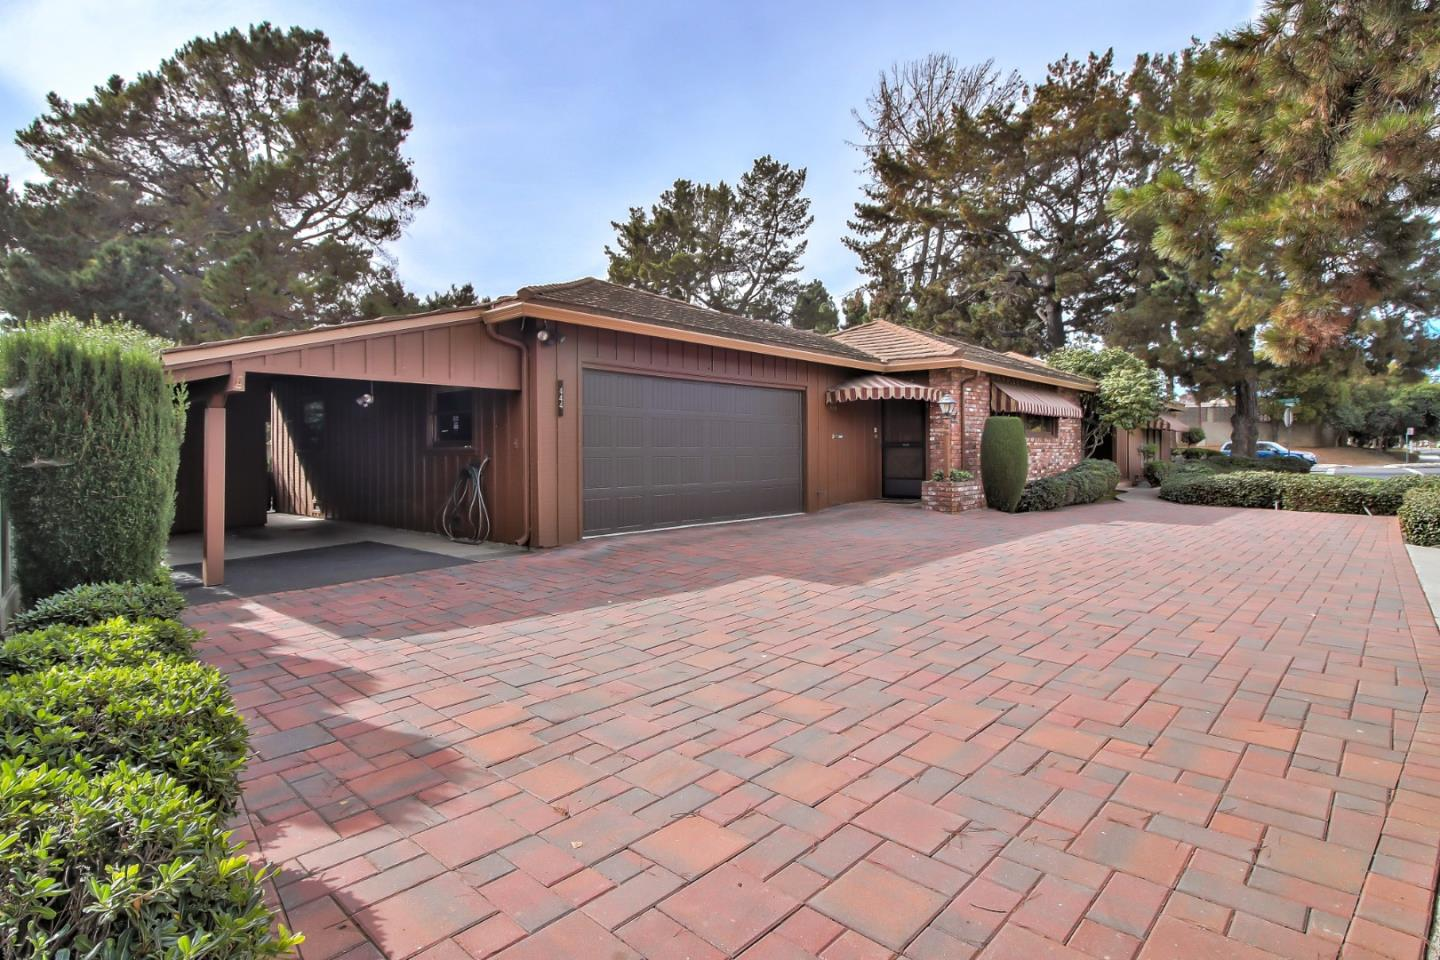 444 OLD SAN FRANCISCO RD, SUNNYVALE, CA 94086  Photo 3